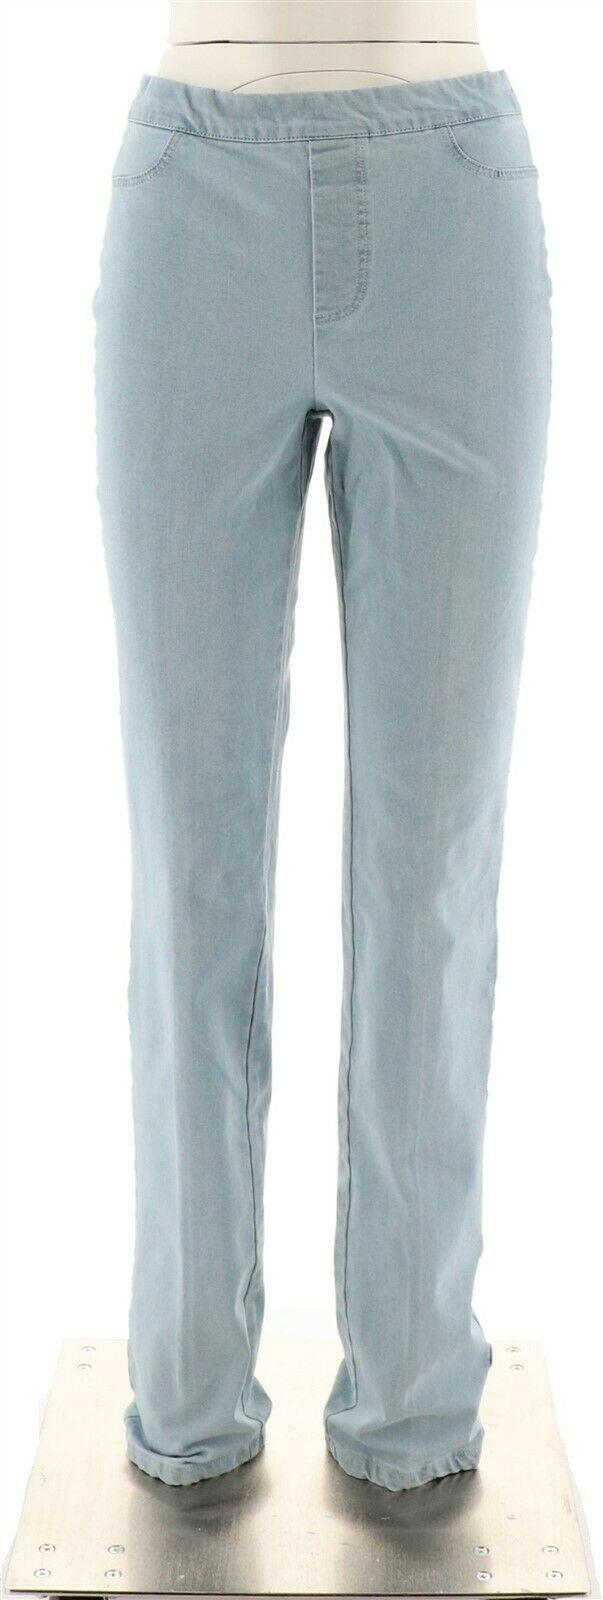 Primary image for Isaac Mizrahi Tall 24/7 Denim Straight Leg Jeans Bleached Indigo 18 NEW A297723